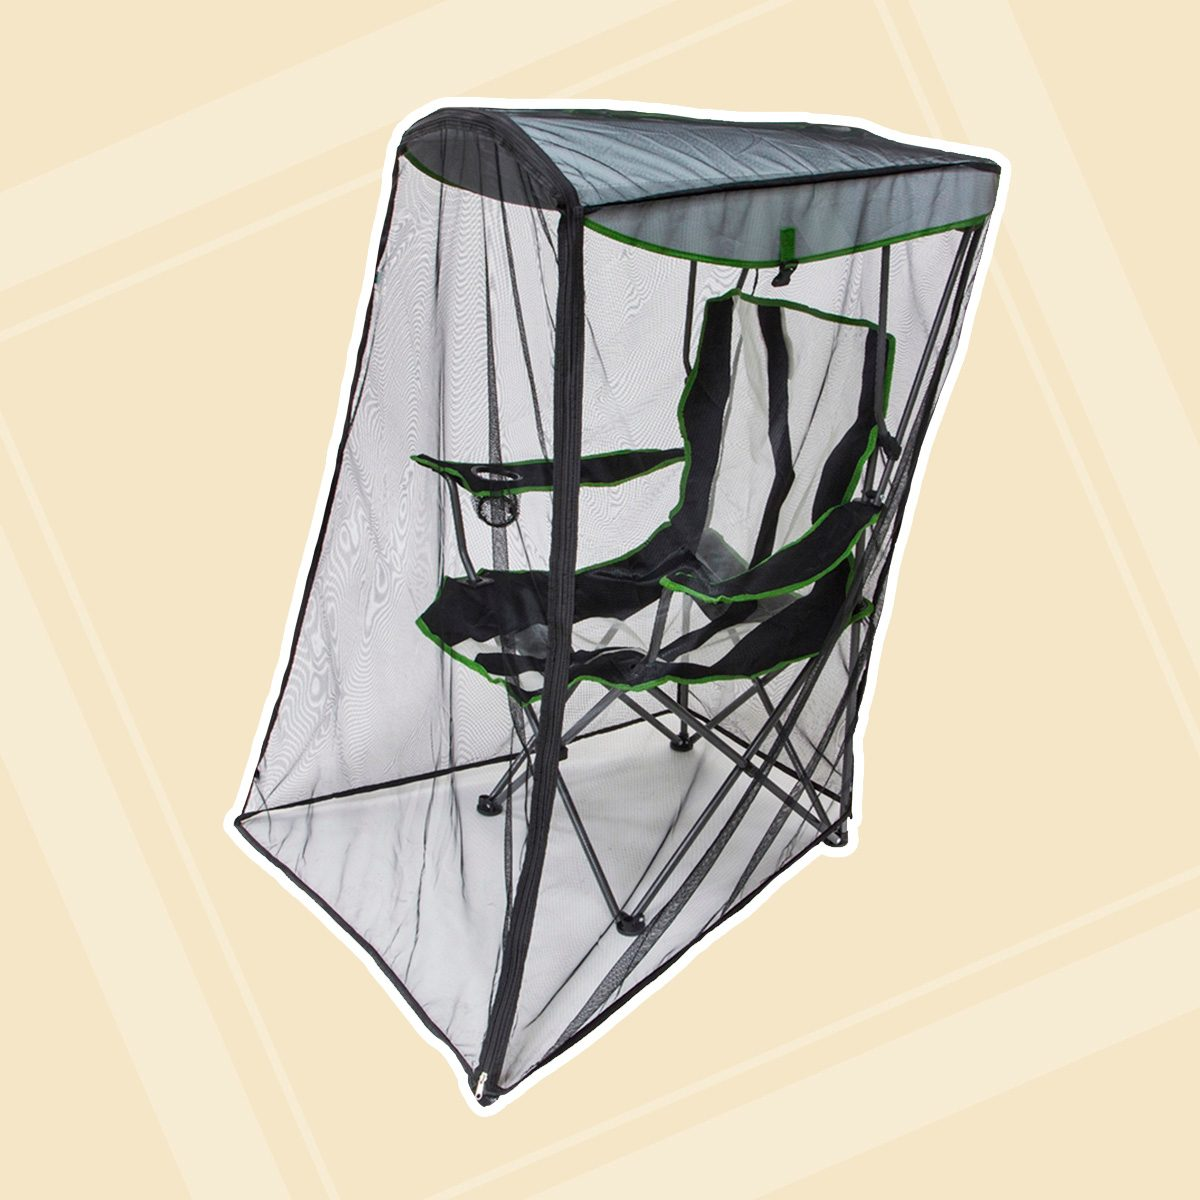 ORIGINAL CANOPY CHAIR WITH BUG GUARD